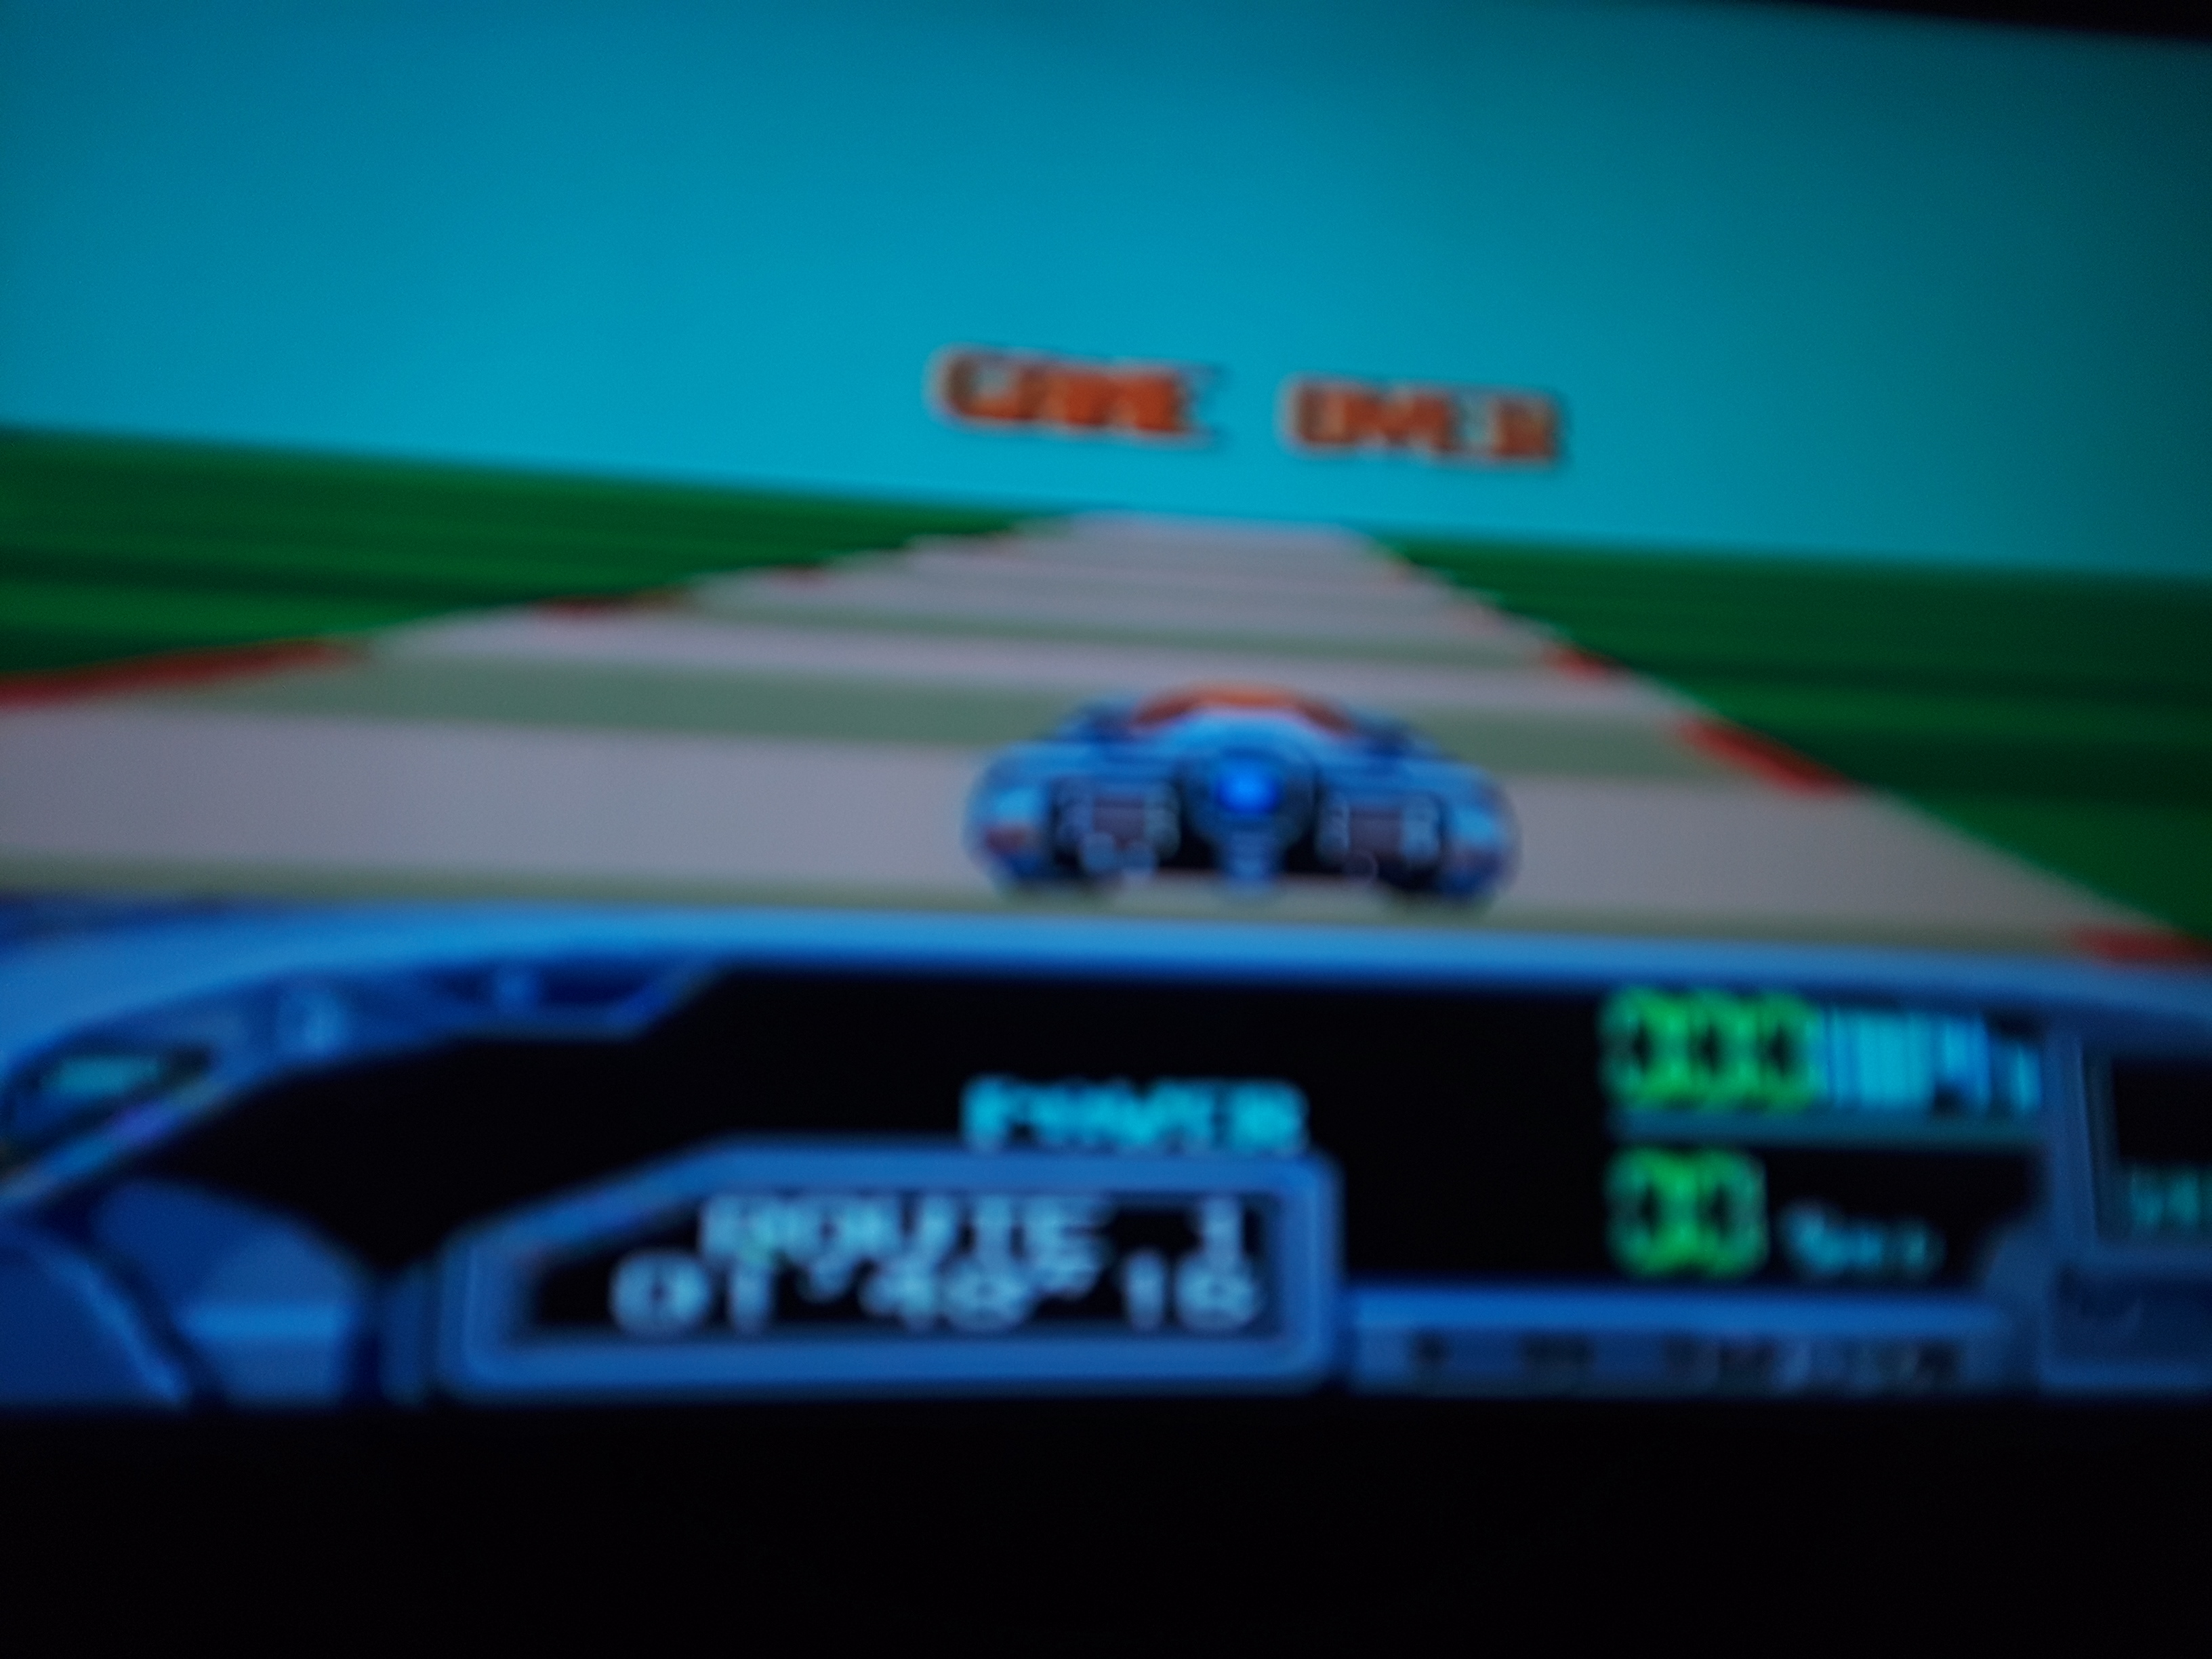 JML101582: Outrun 2019 [Stage 2] (Sega Genesis / MegaDrive Emulated) 0:01:48.16 points on 2019-03-25 18:22:04